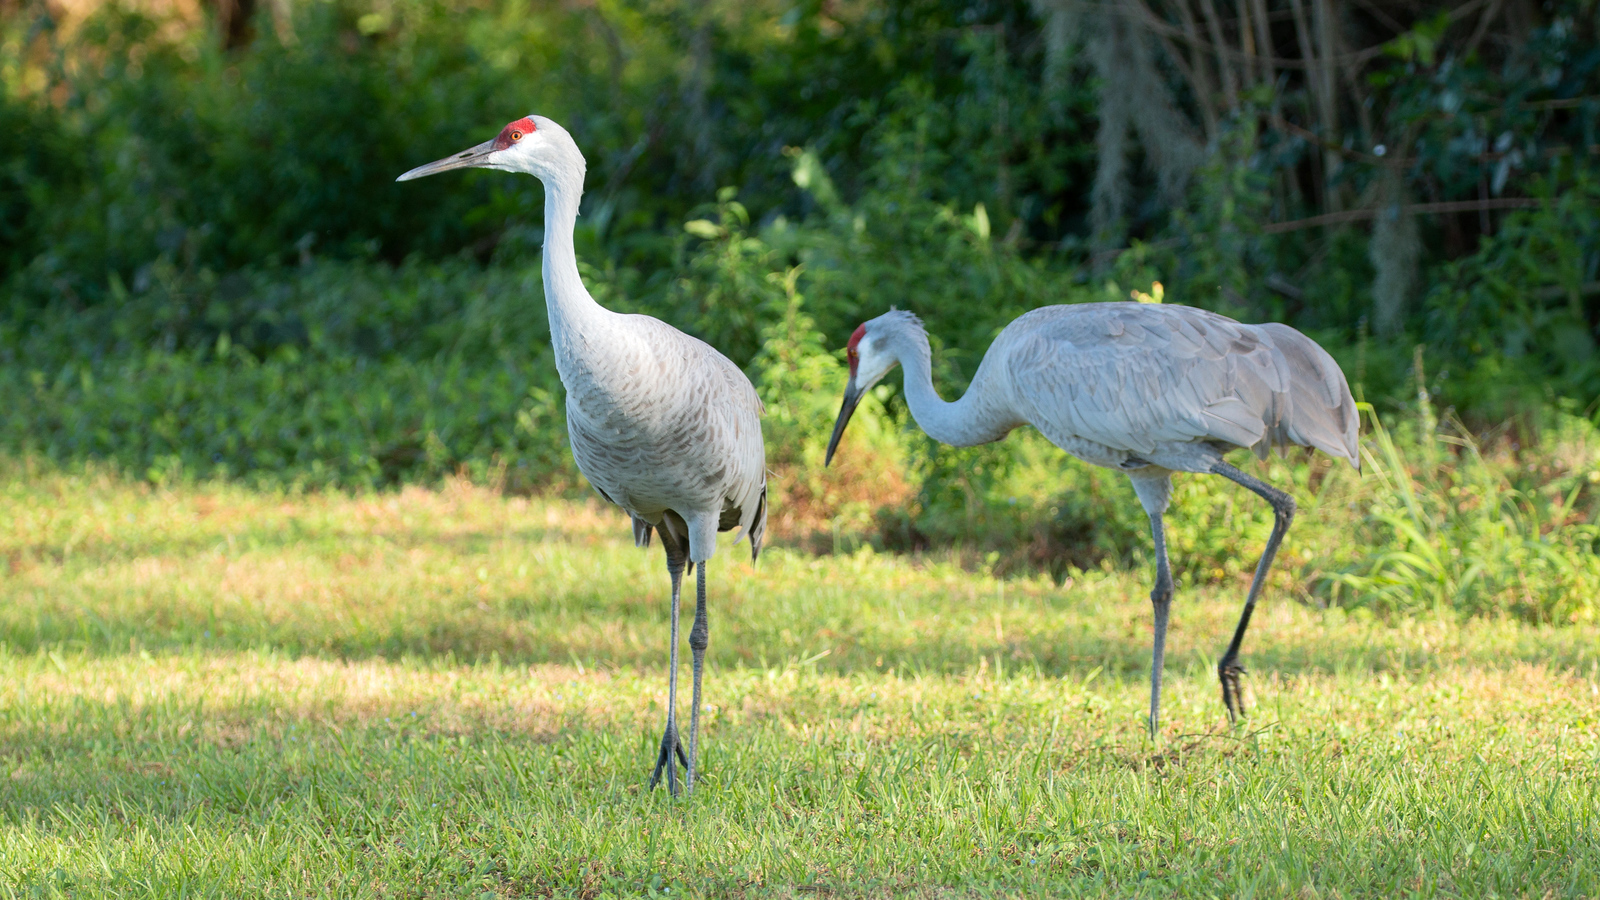 Photograph of a pair of Sandhill Cranes